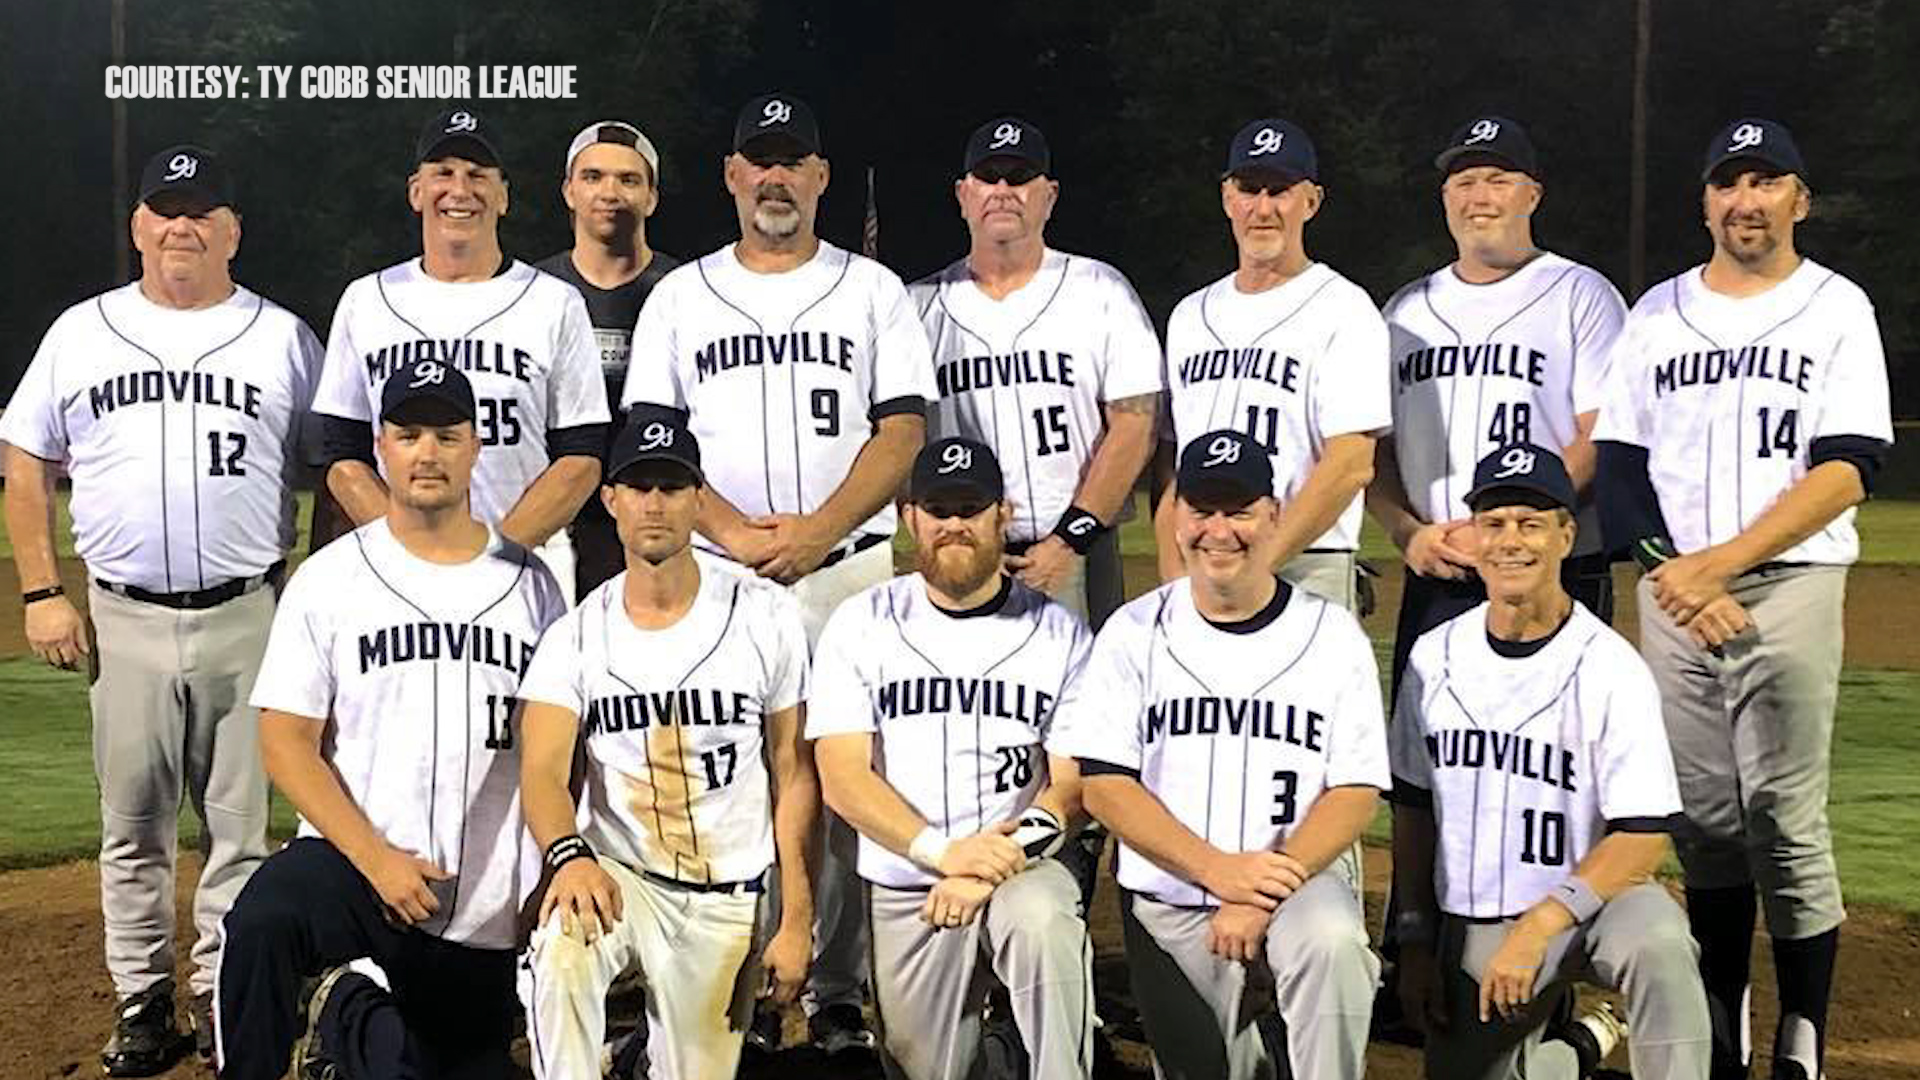 Ty Cobb Senior League gives people a chance to play baseball once again